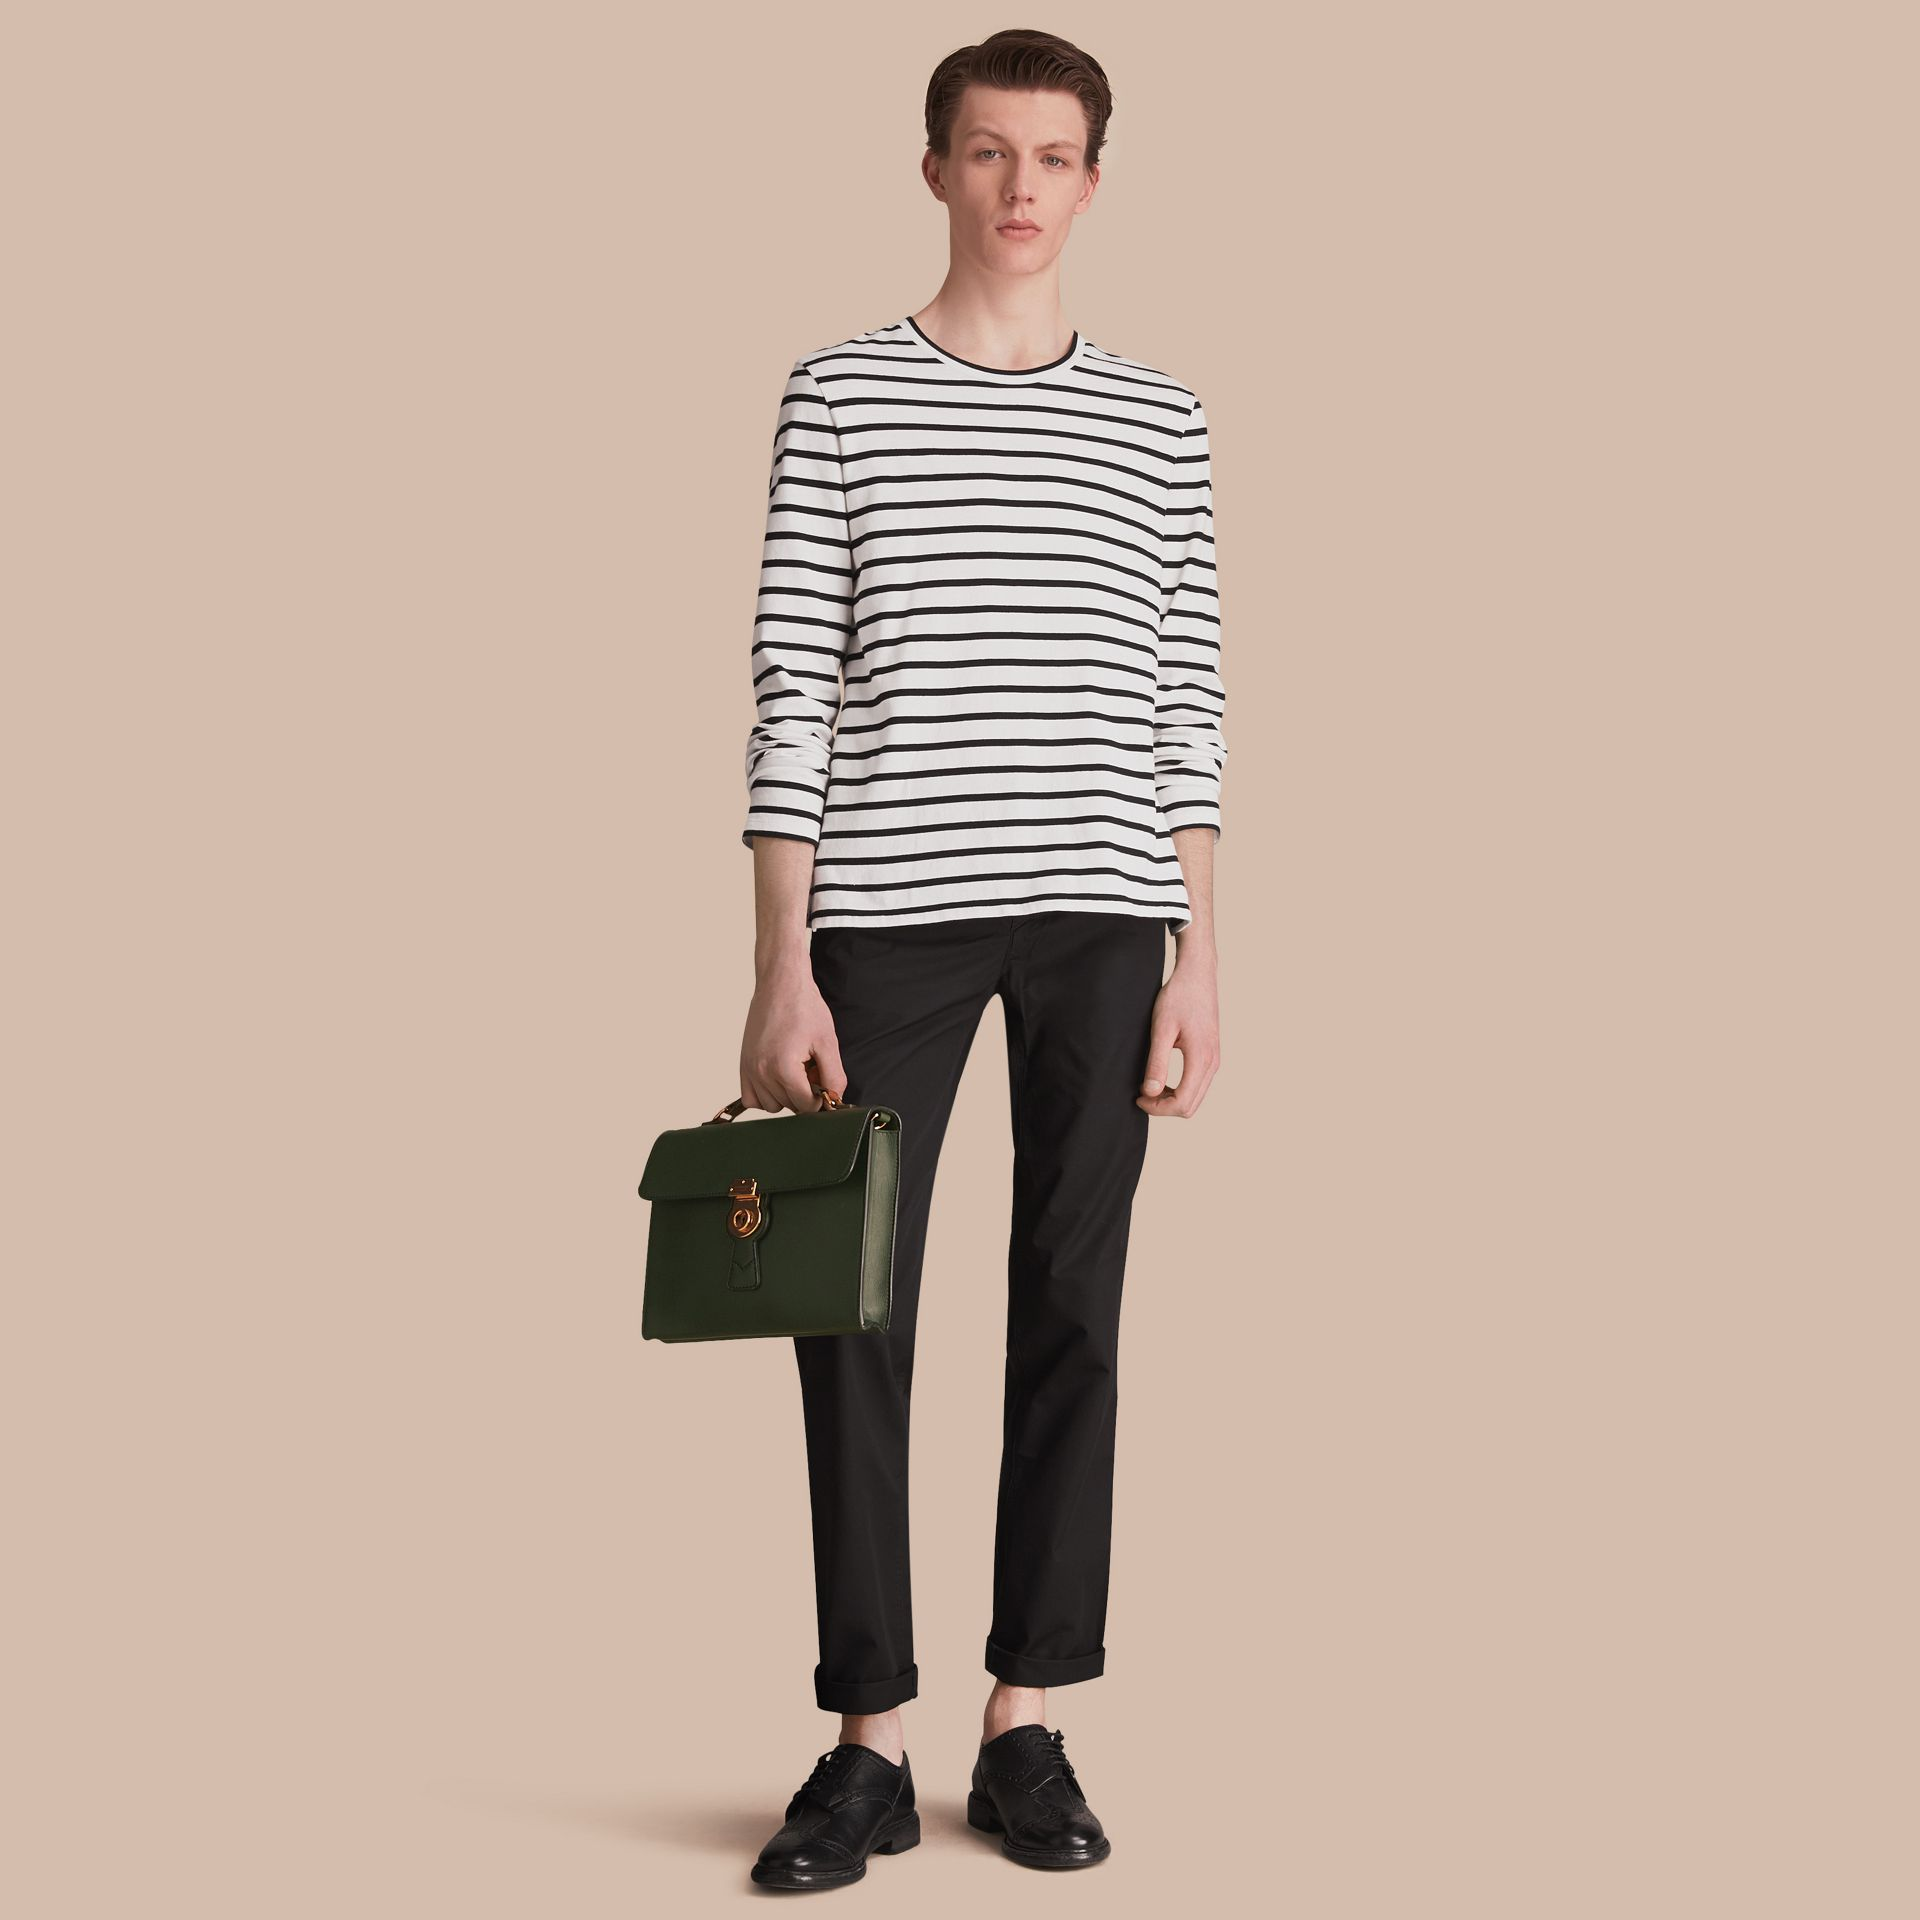 Pantalon chino de coupe droite en coton (Noir) - Homme | Burberry - photo de la galerie 1